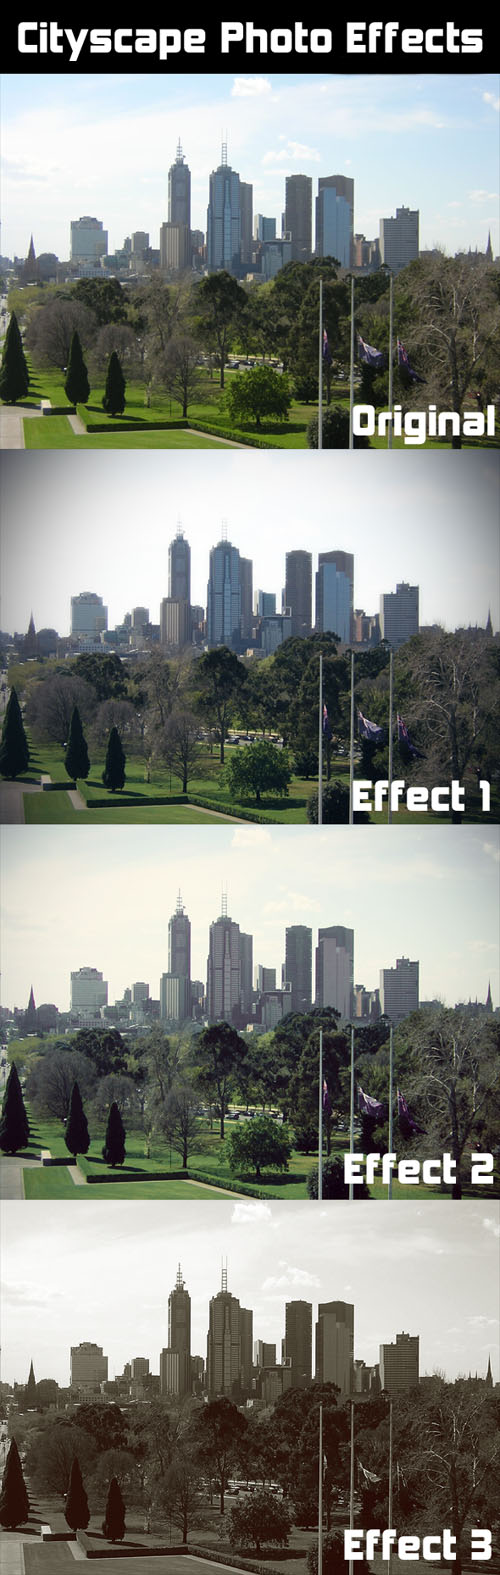 Actions for Photoshop - Cityscape Photo FX